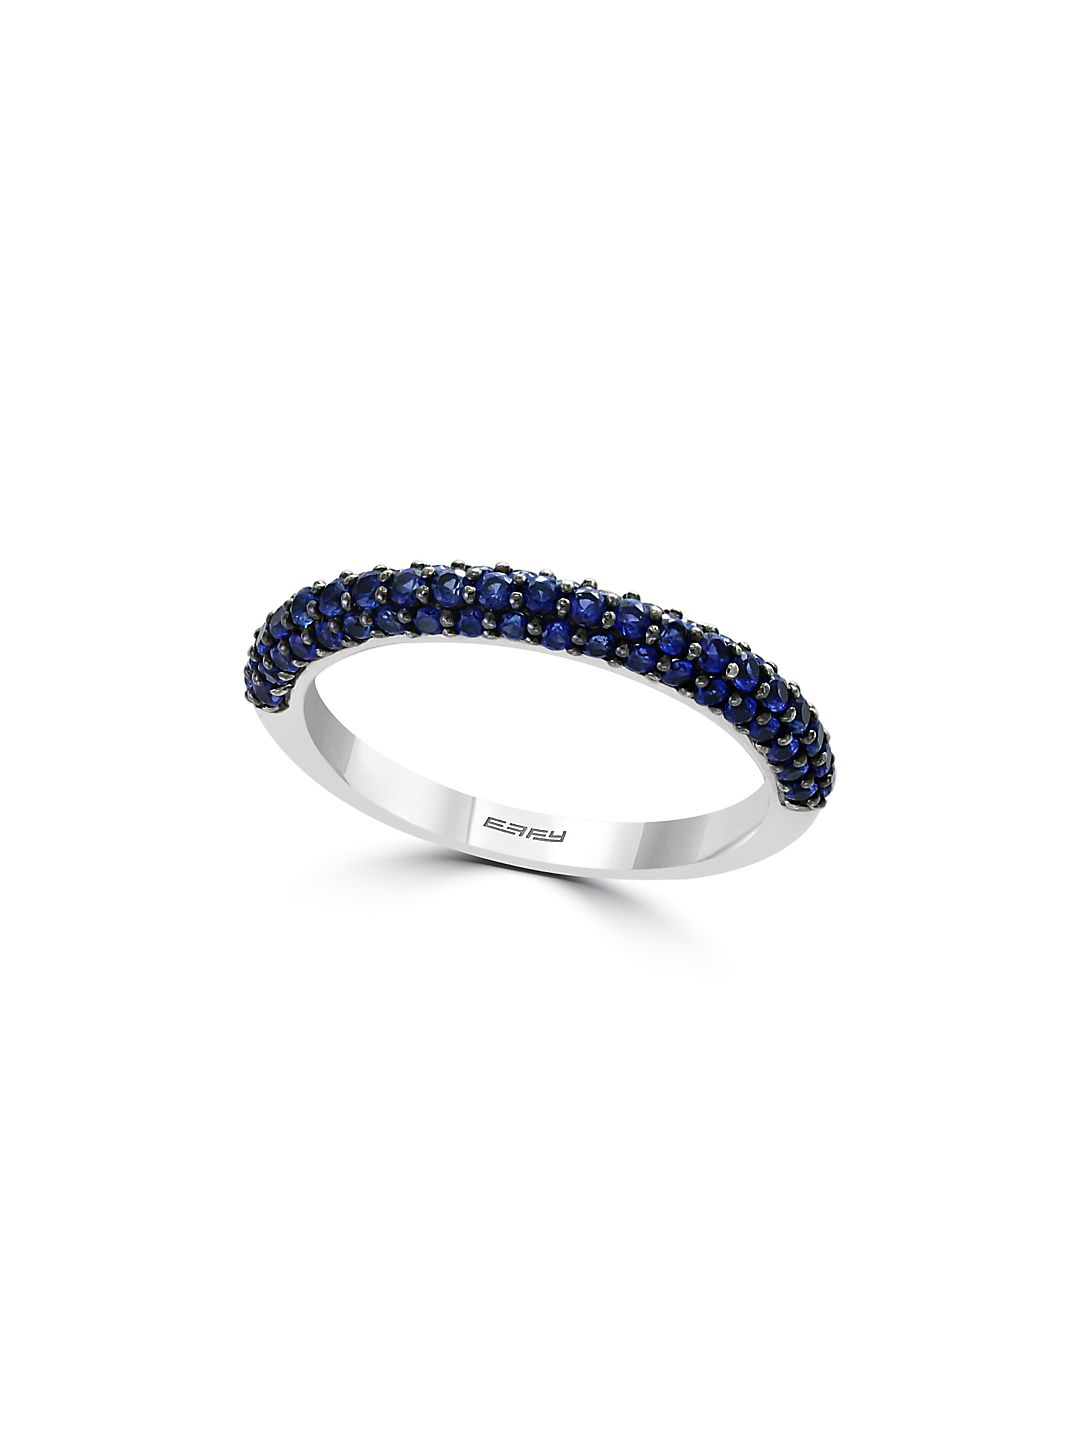 Sterling Silver & Sapphire Pavé Ring